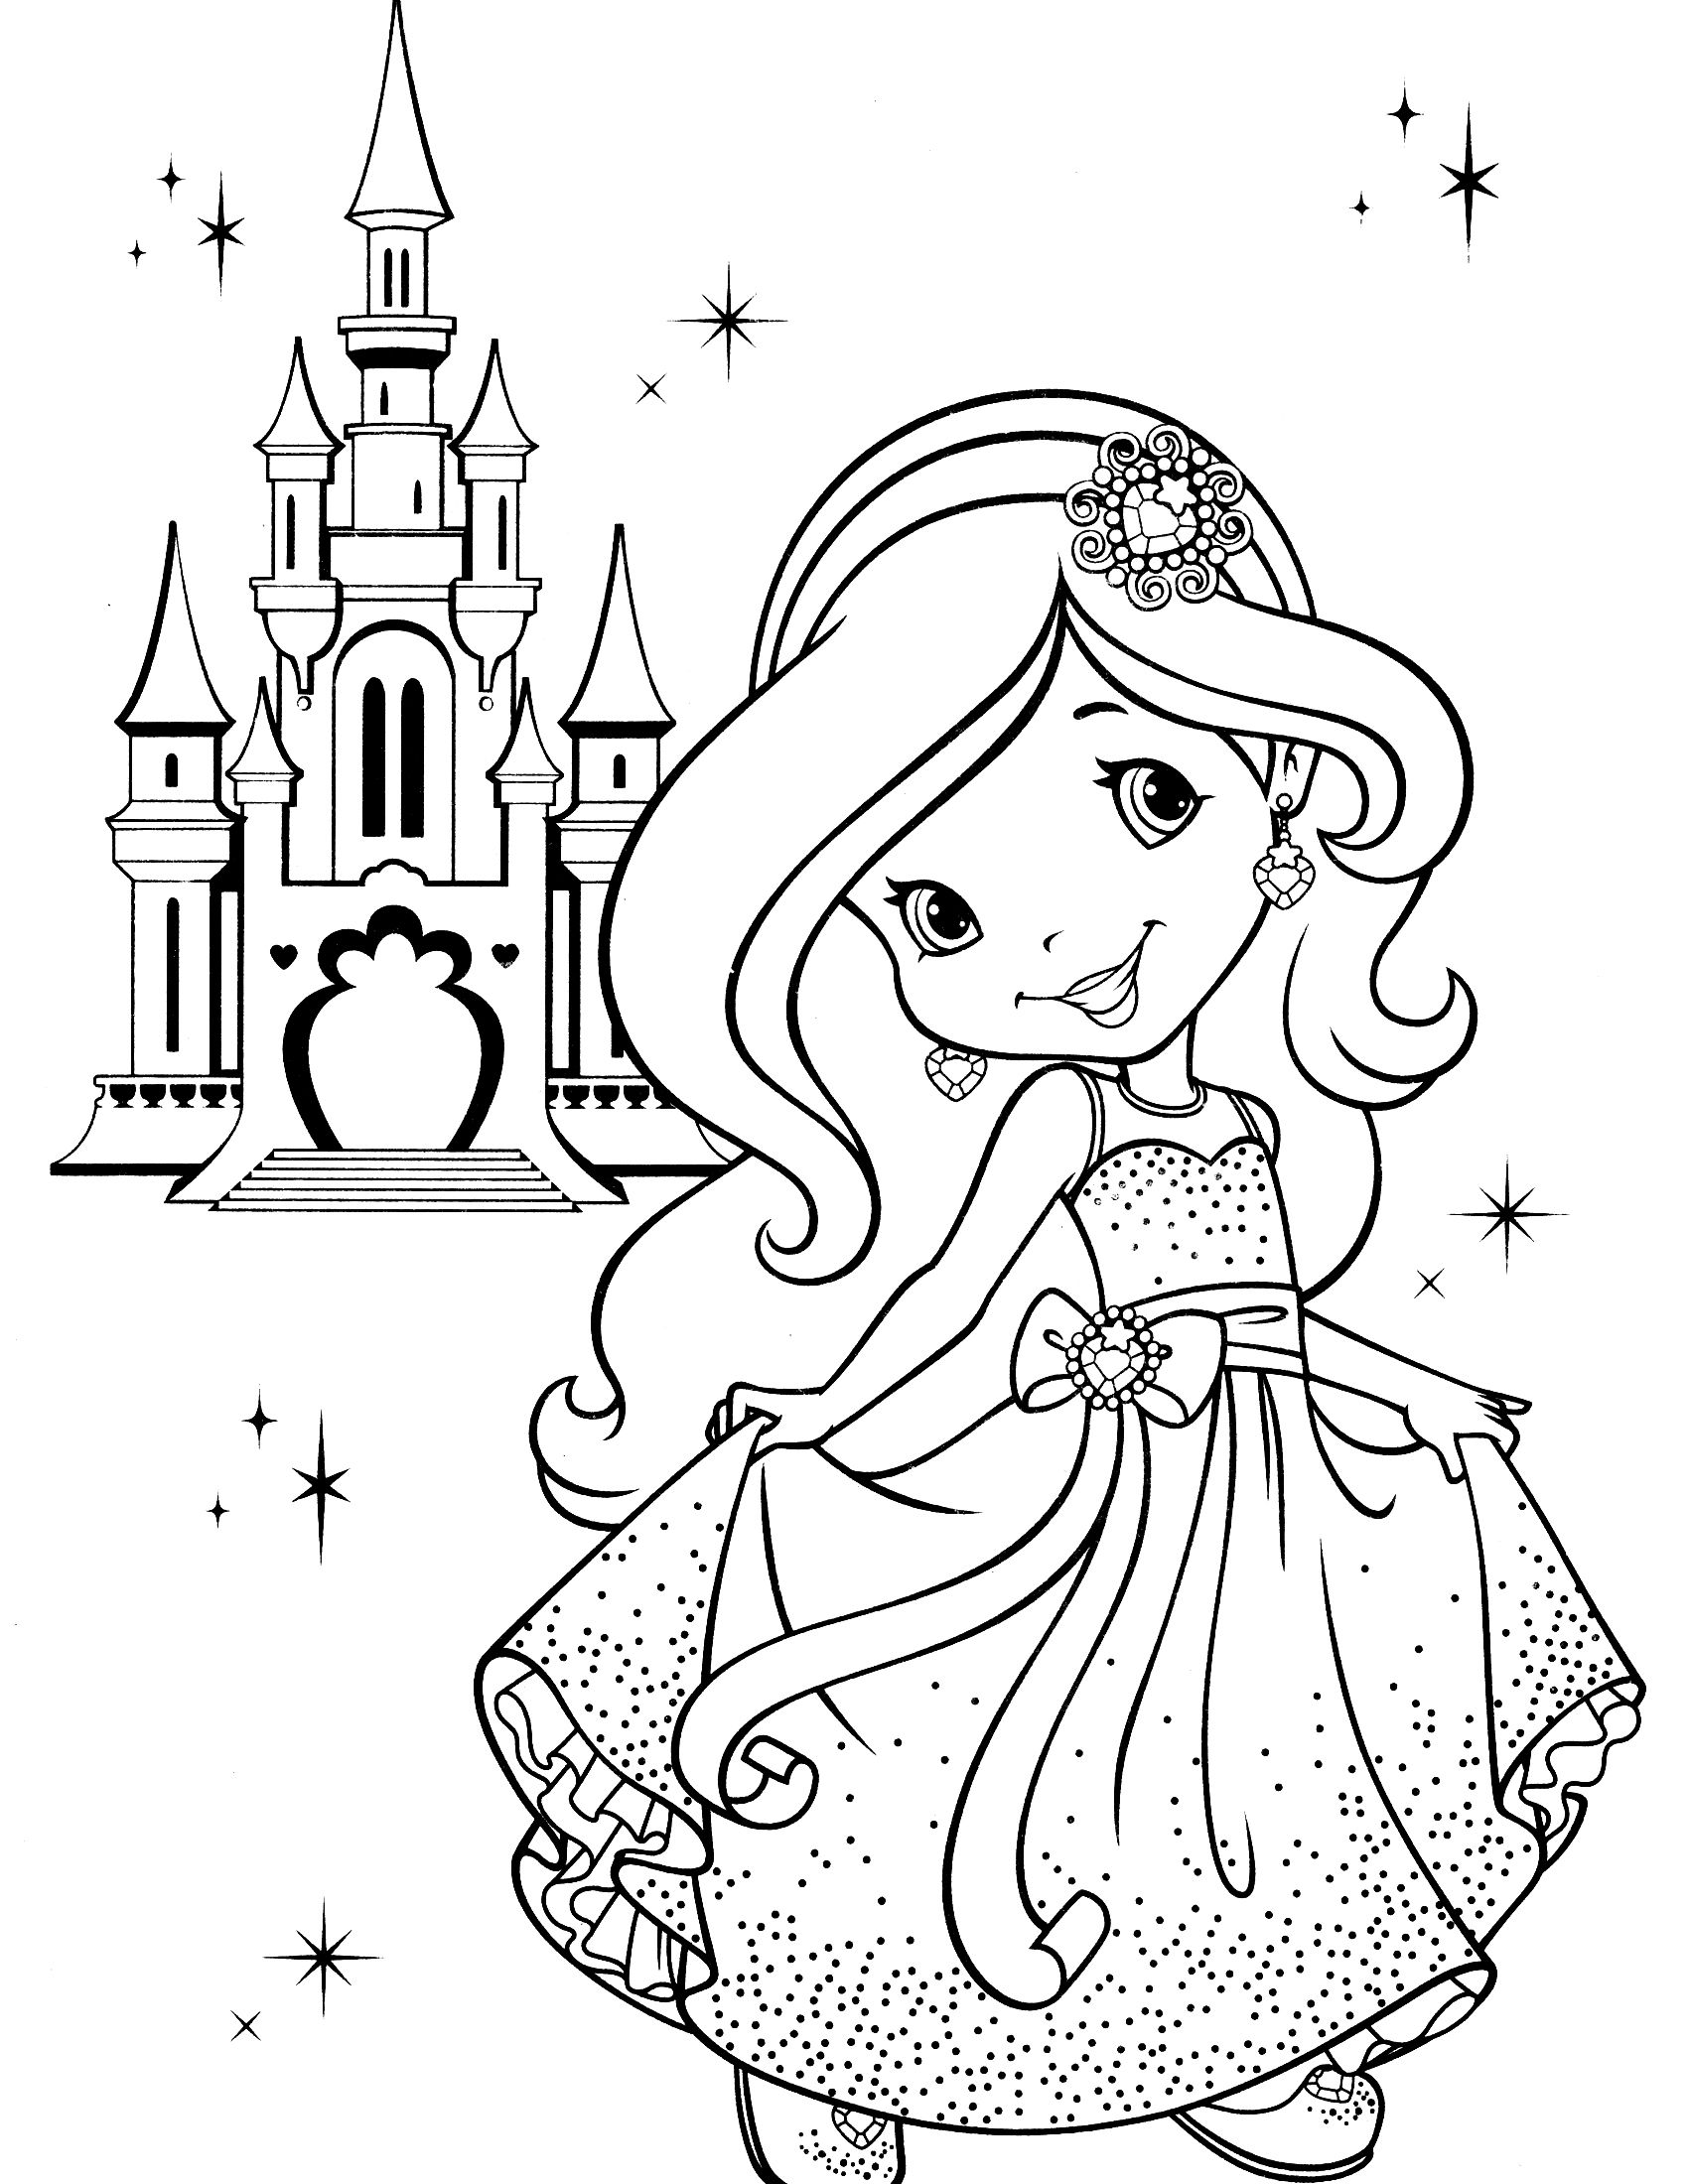 Strawberry Shortcake Coloring Page Adult Coloring Book Princess